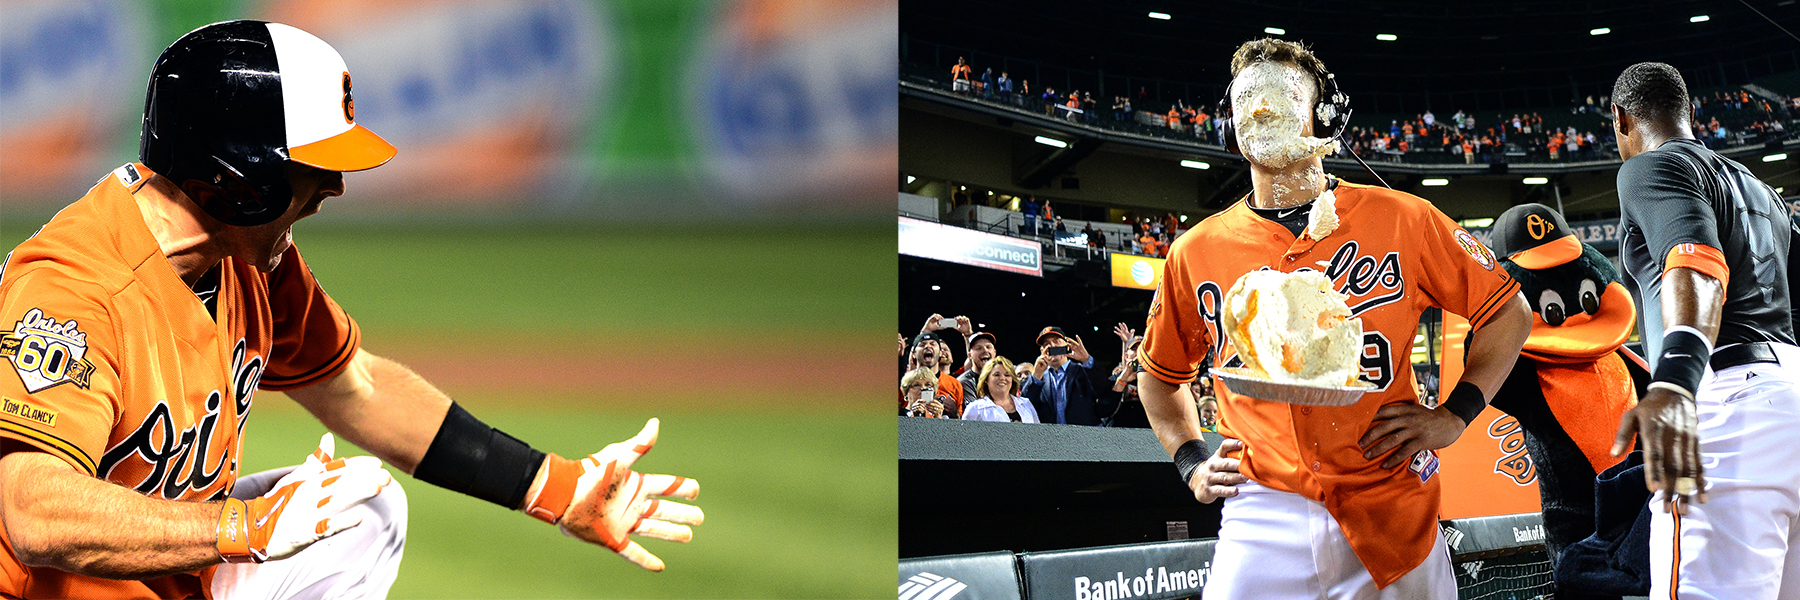 Left: Steve Lambardozzi of the Baltimore Orioles celebrates after hitting a triple during the bottom of the 12th inning during a game against the Toronto Blue Jays at Oriole Park at Camden Yards on April 12, 2014.  Right: David Lough, left, of the Baltimore Orioles is pied in the face by Adam Jones after hitting an RBI to win a game against the Toronto Blue Jays in the bottom of the 12th inning at Oriole Park at Camden Yards on April 12, 2014.